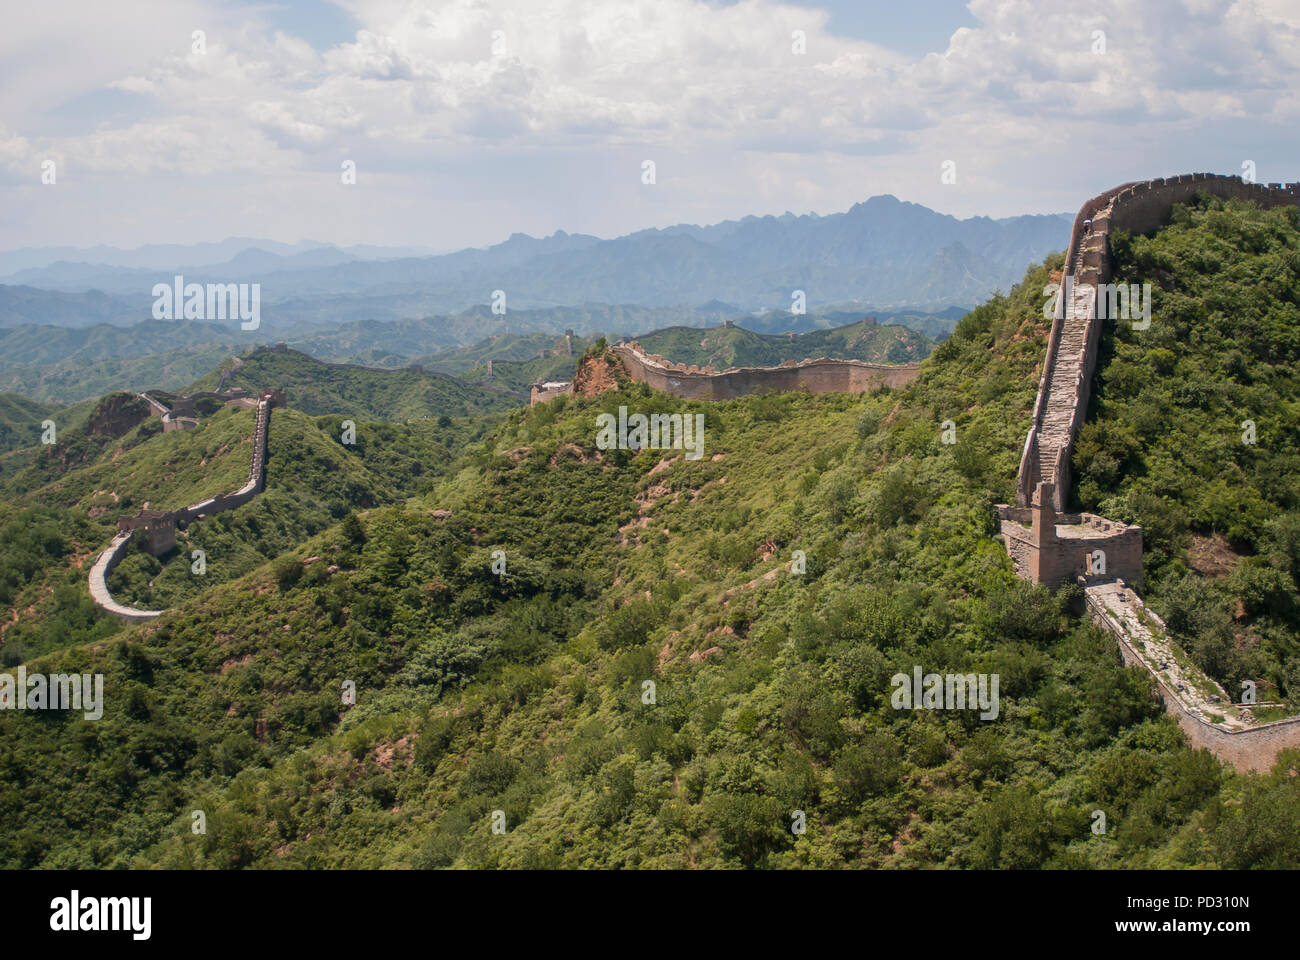 The Great Wall of China at Jinshanling, a popular hiking route and one of the best preserved parts of the Great Wall with many original features. - Stock Image